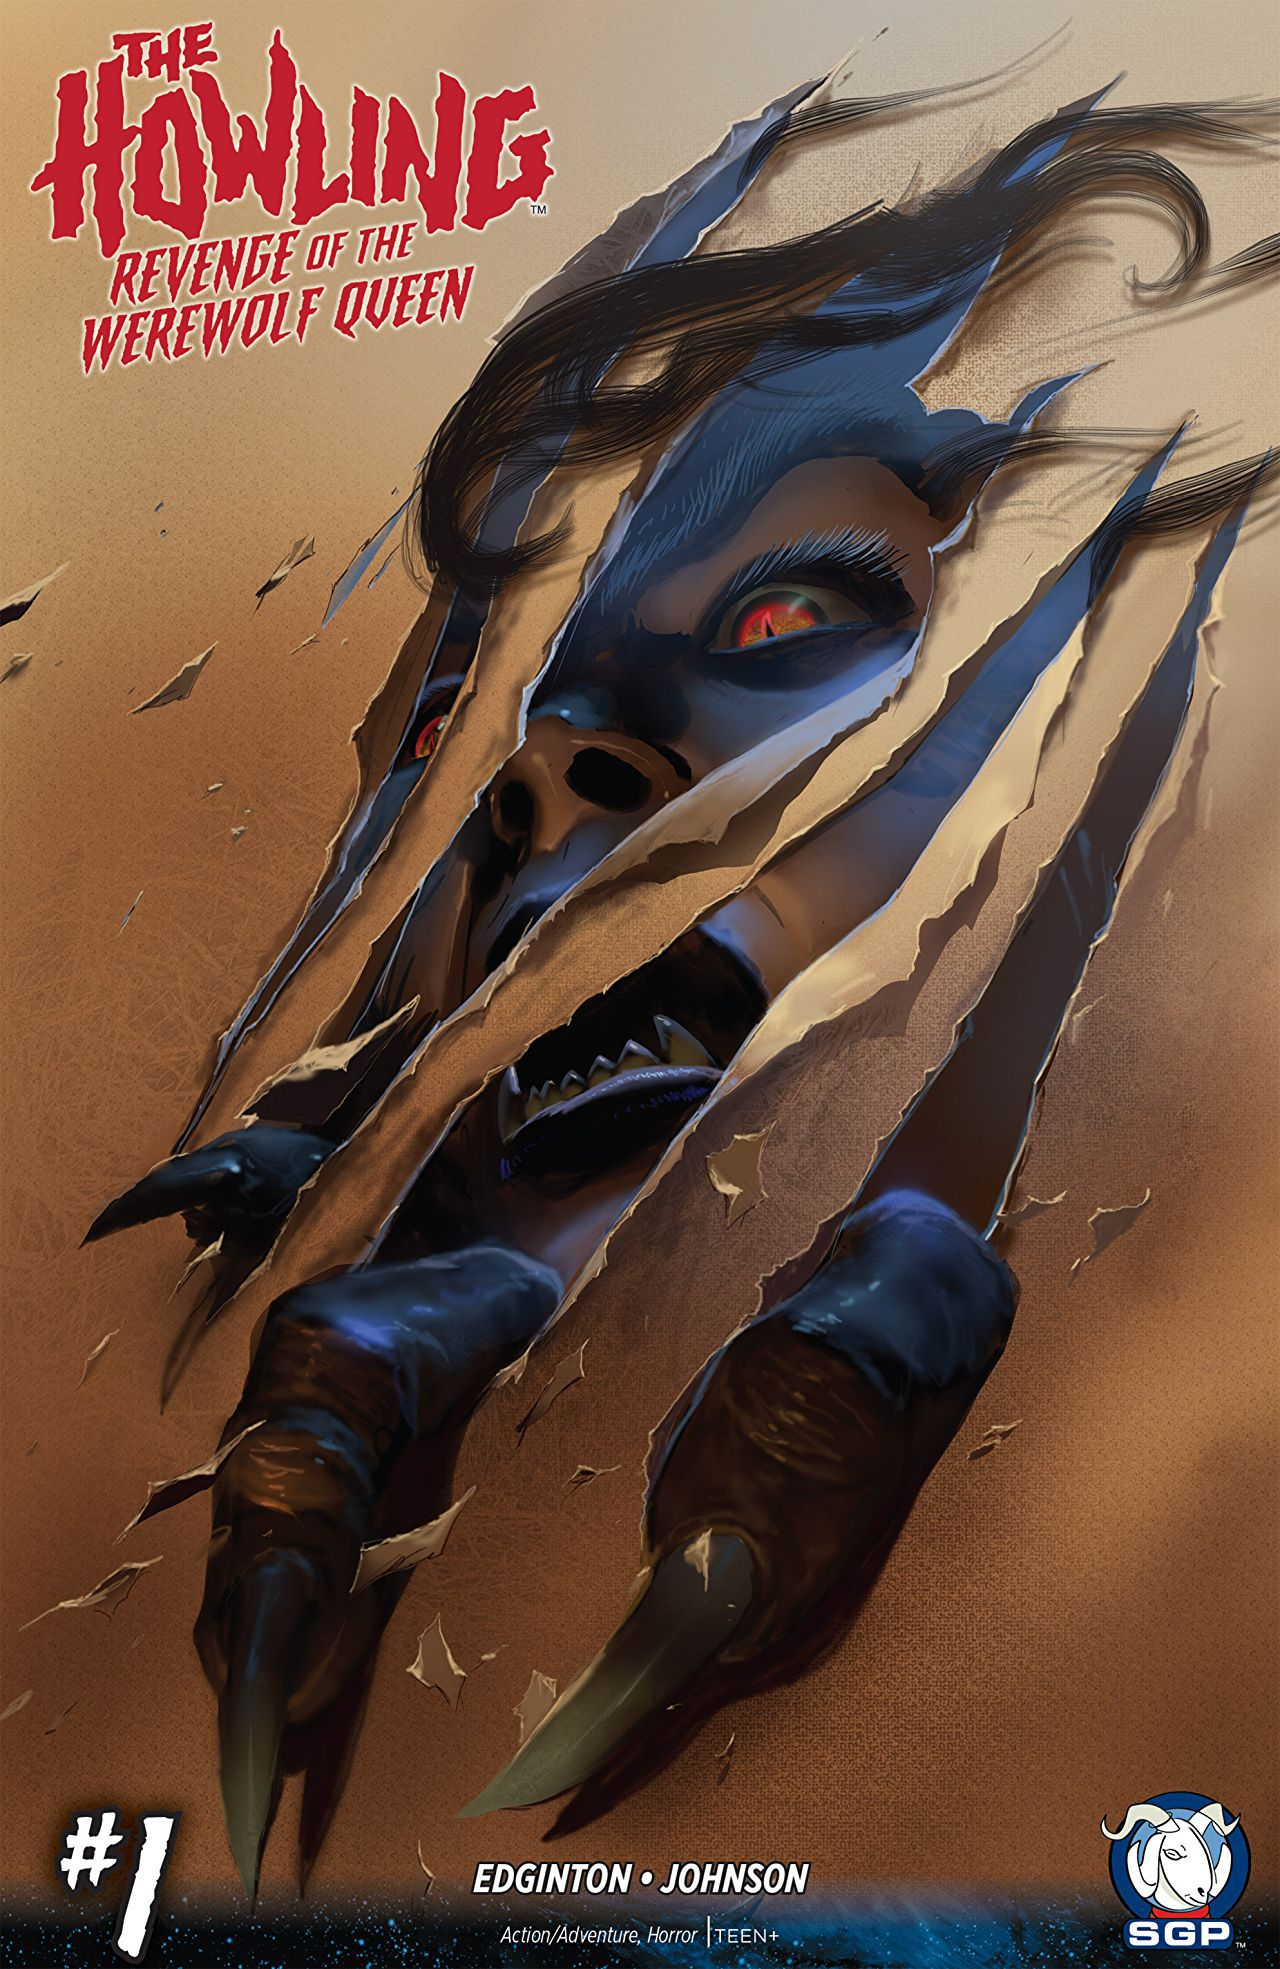 The Howling Revenge of the Werewolf Queen Issue 1 Comic Cover